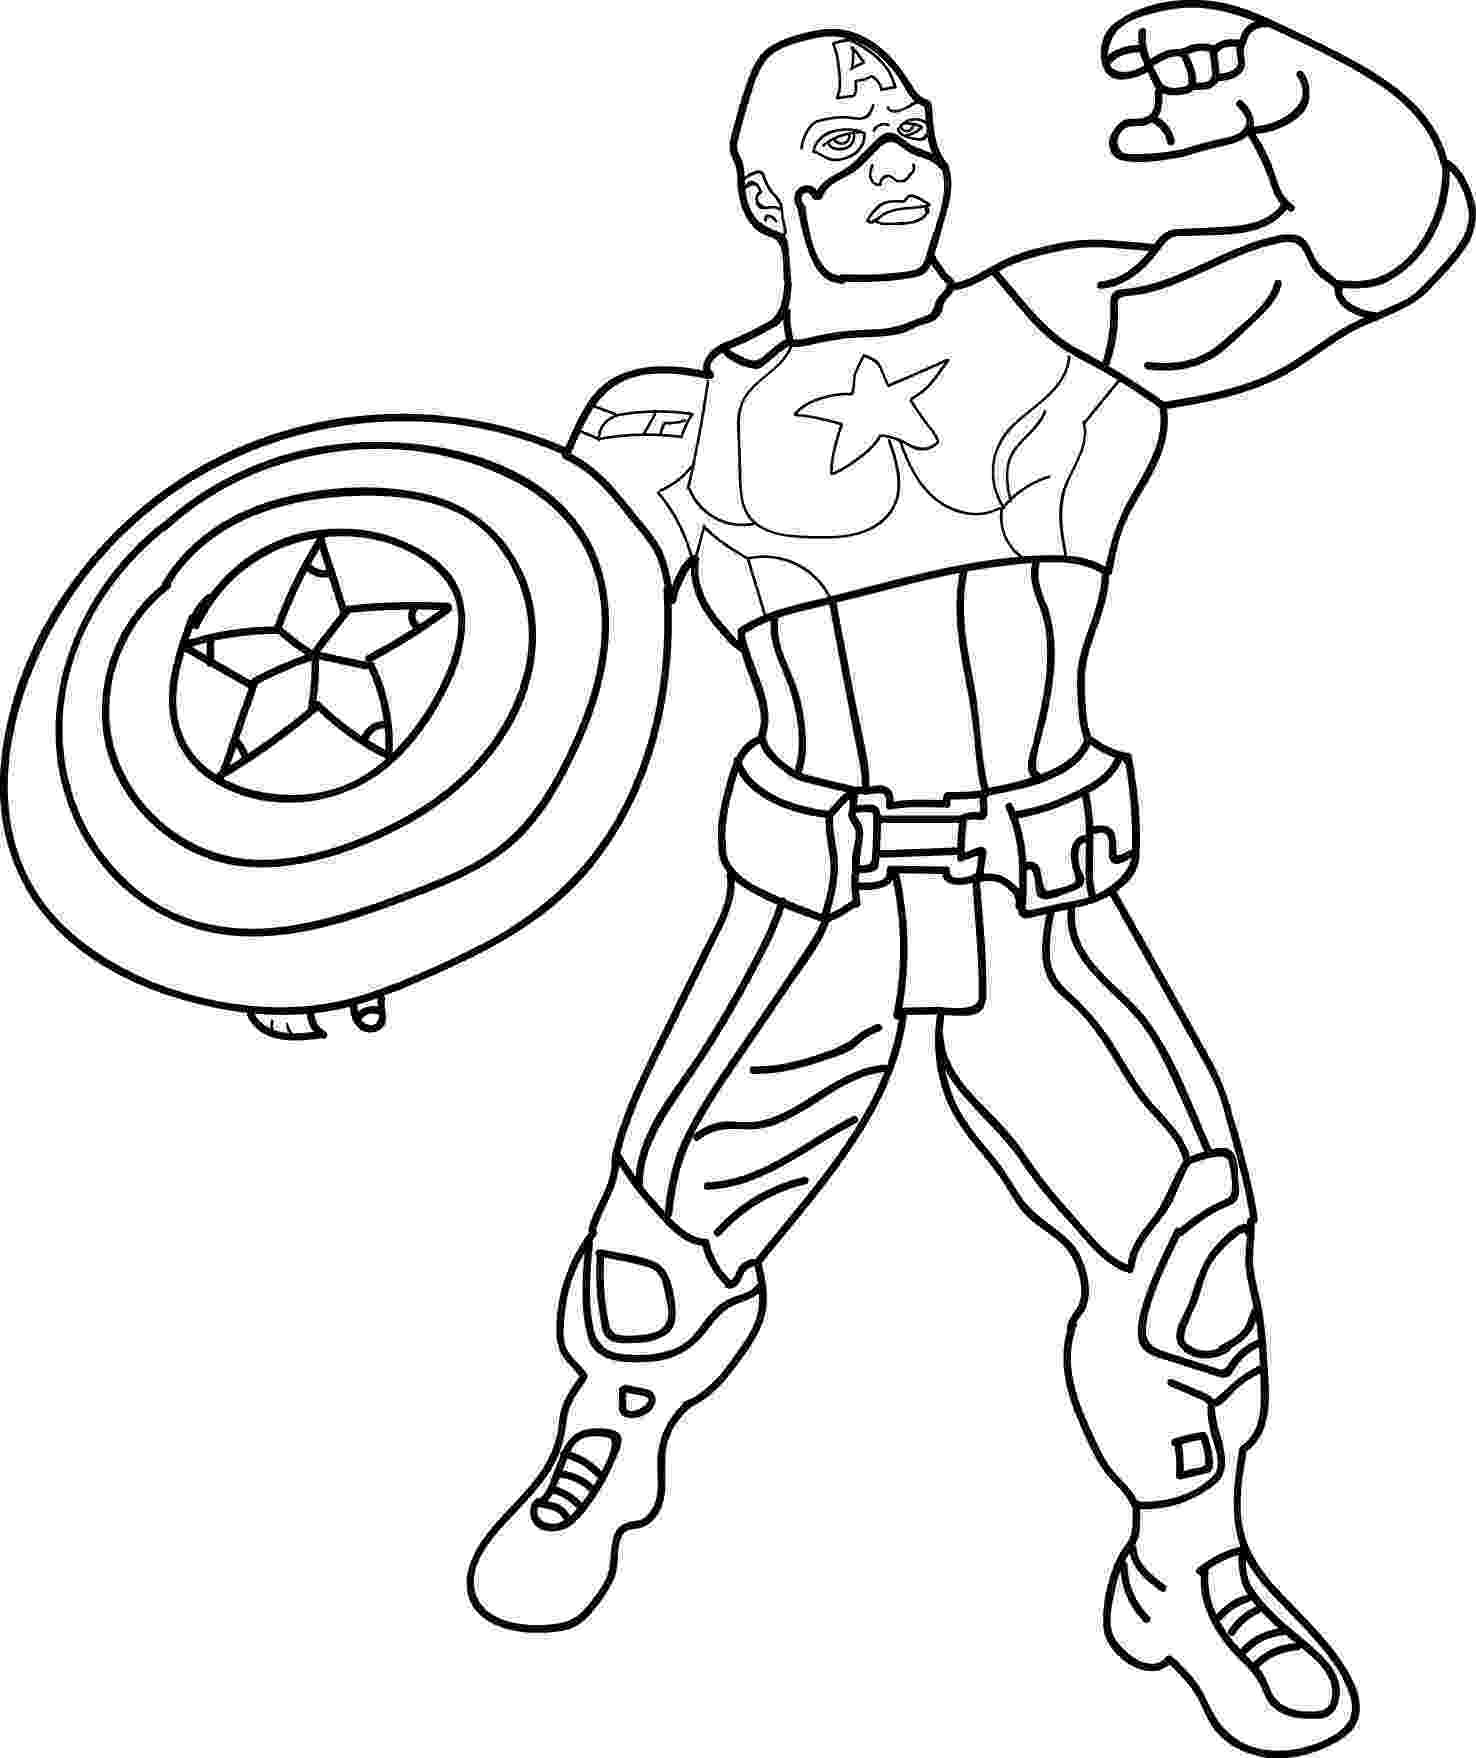 captain america coloring pages free printable captain america coloring pages for kids captain america pages coloring